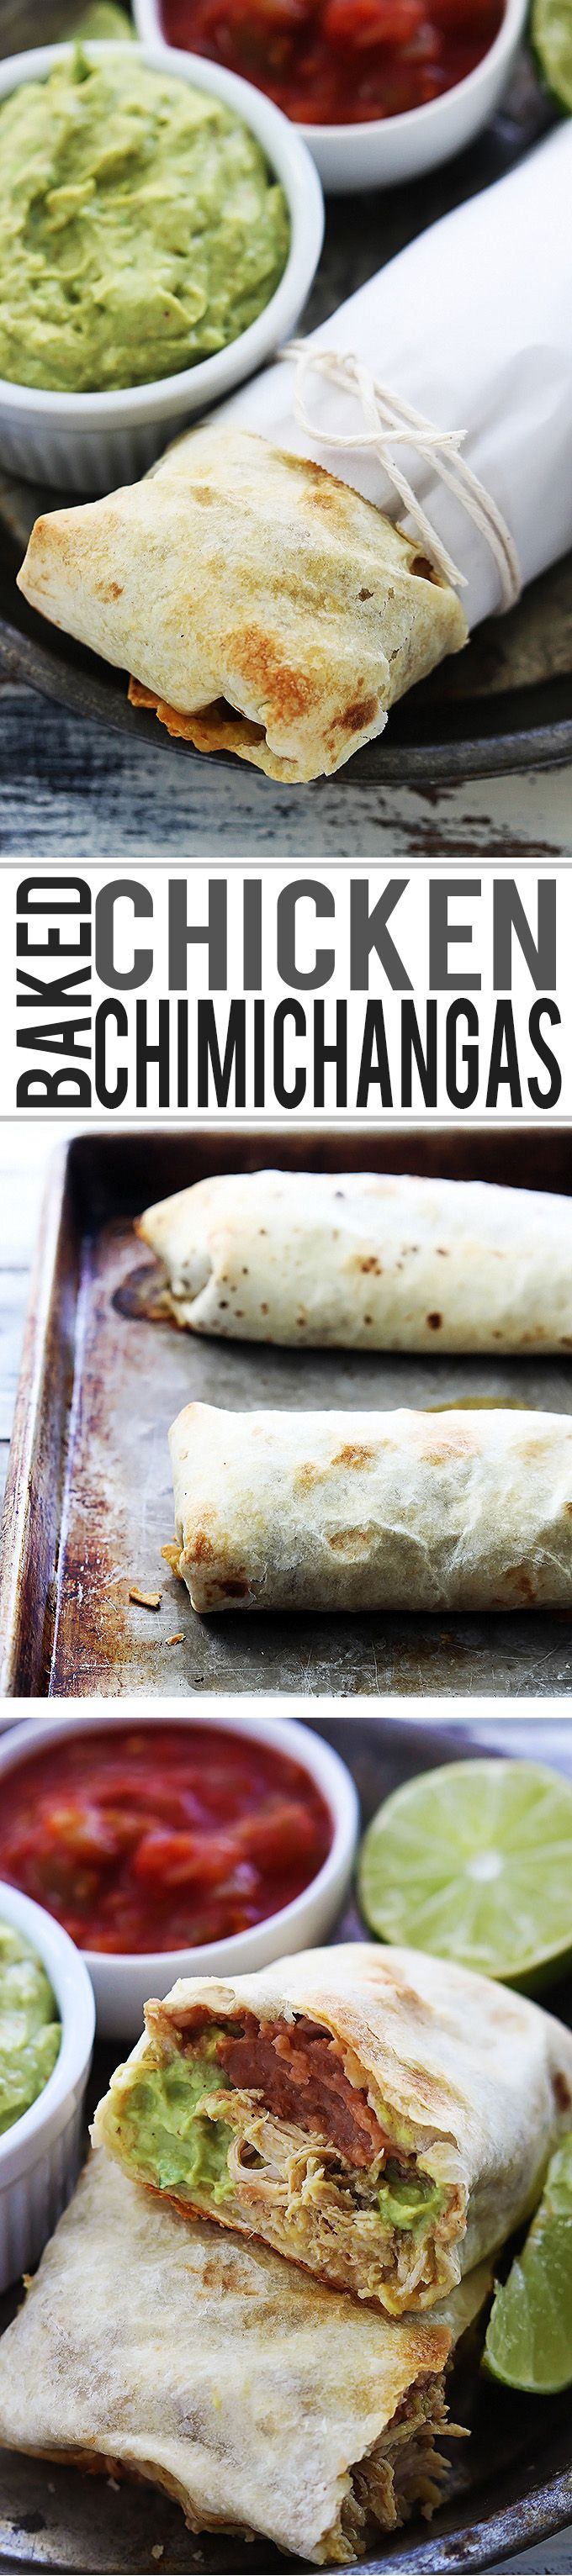 Crispy, healthy baked (not fried!) chicken chimichangas you can whip up in a hurry! Make THM by using low carb tortillas.